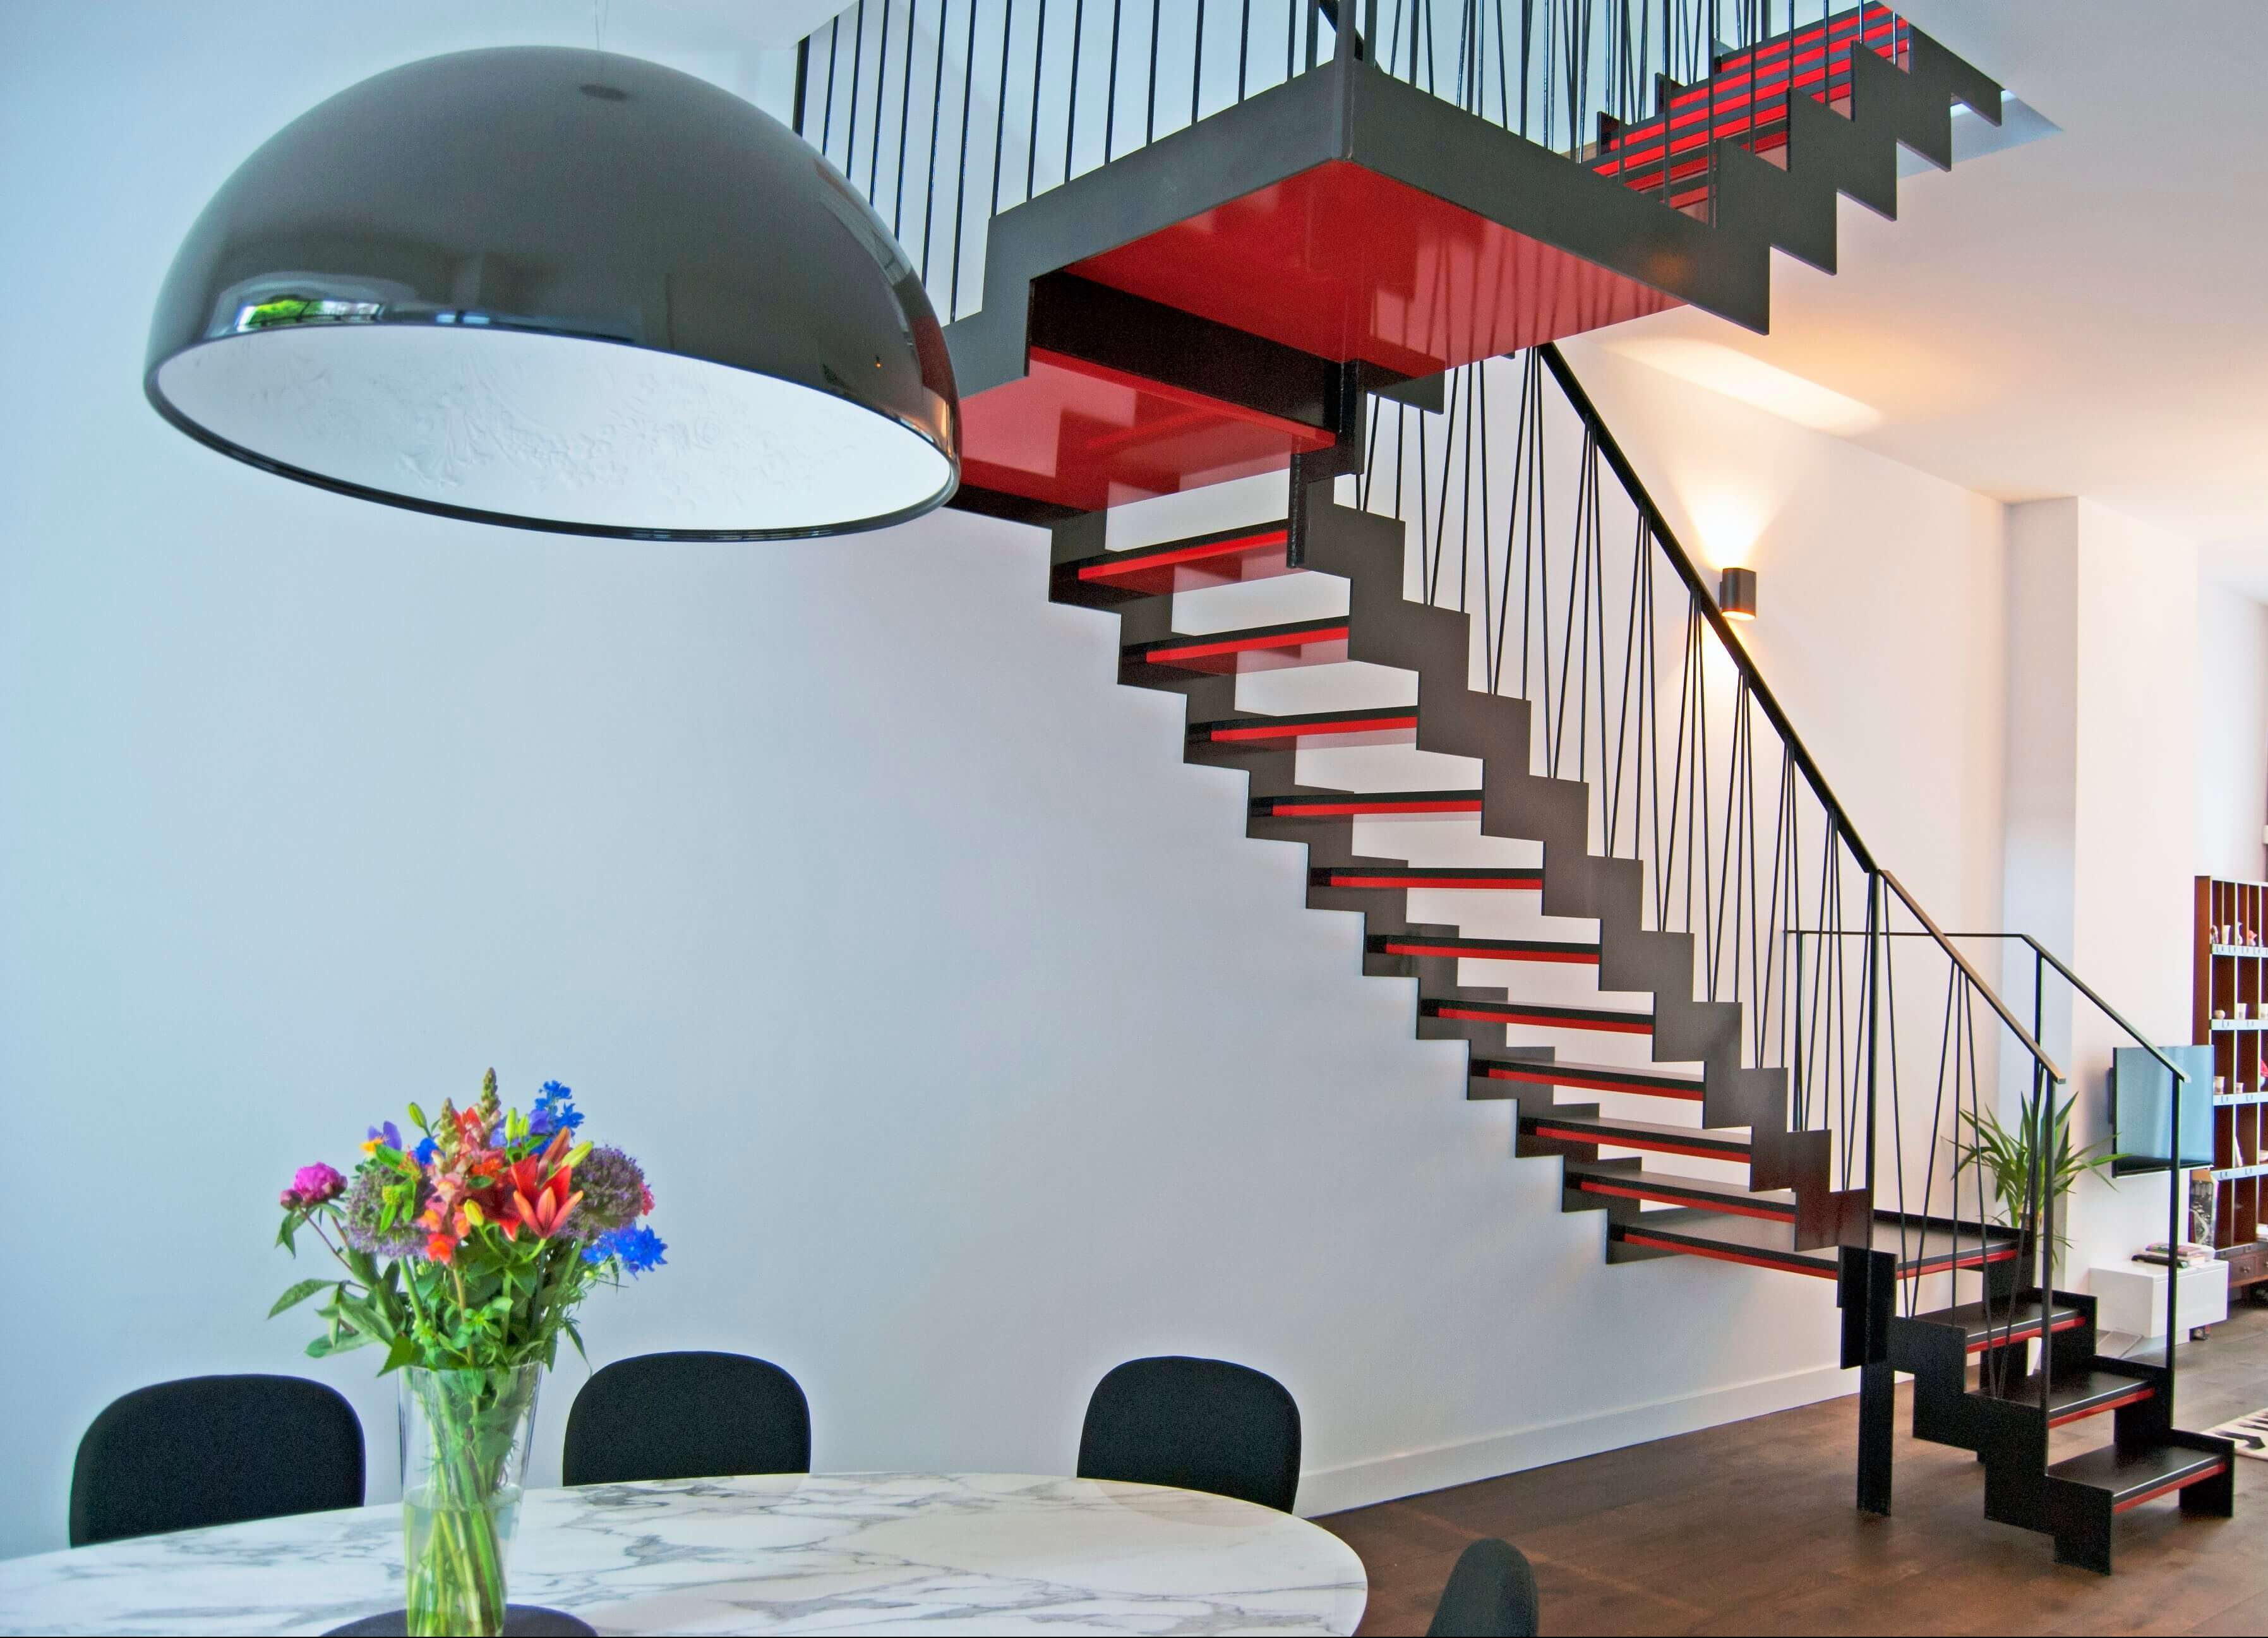 Louboutin inspired staircase